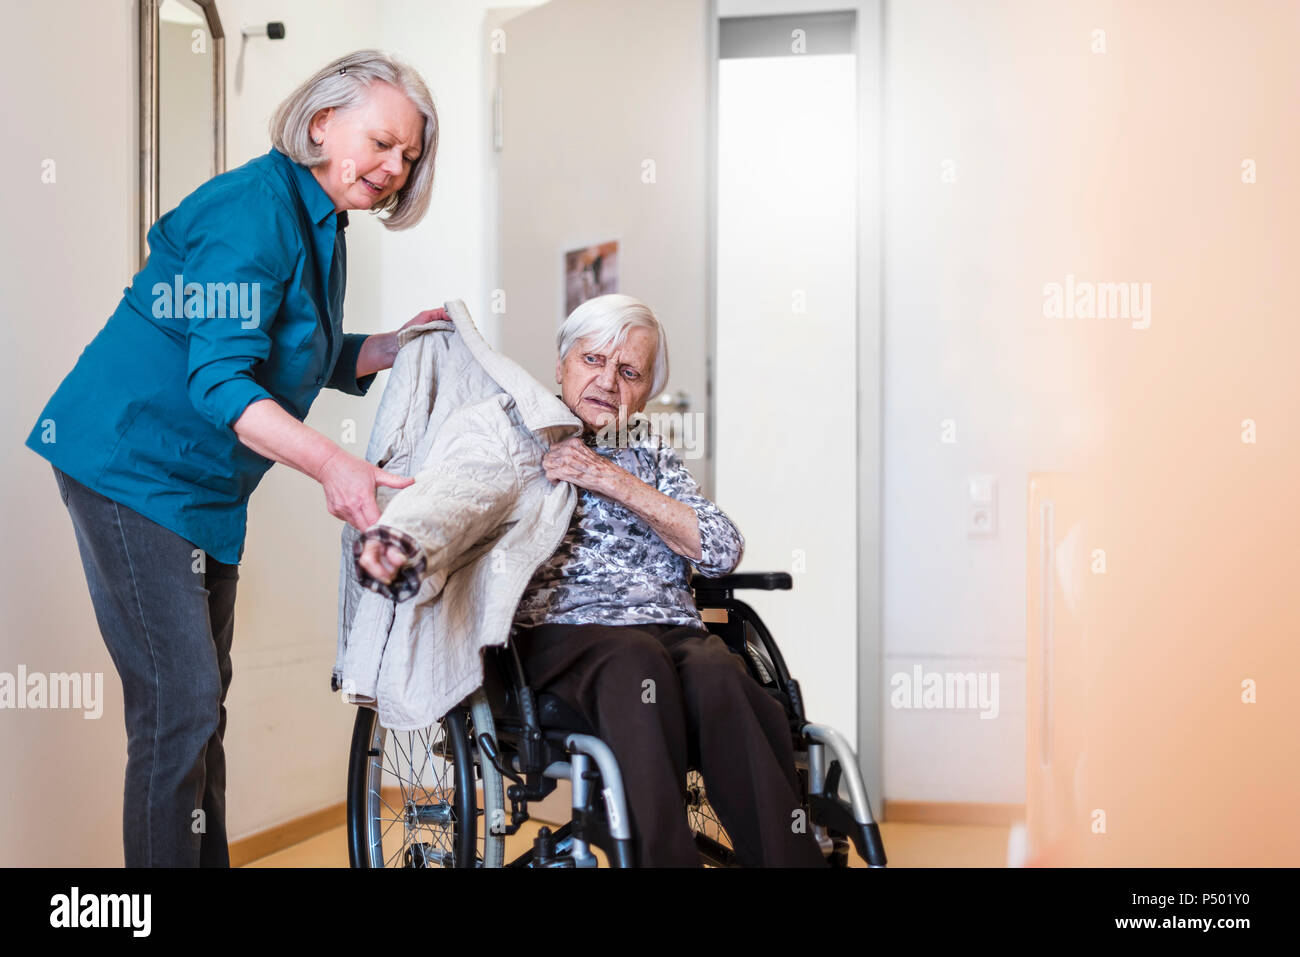 Woman taking care of old woman in wheelchair putting her jacket on - Stock Image